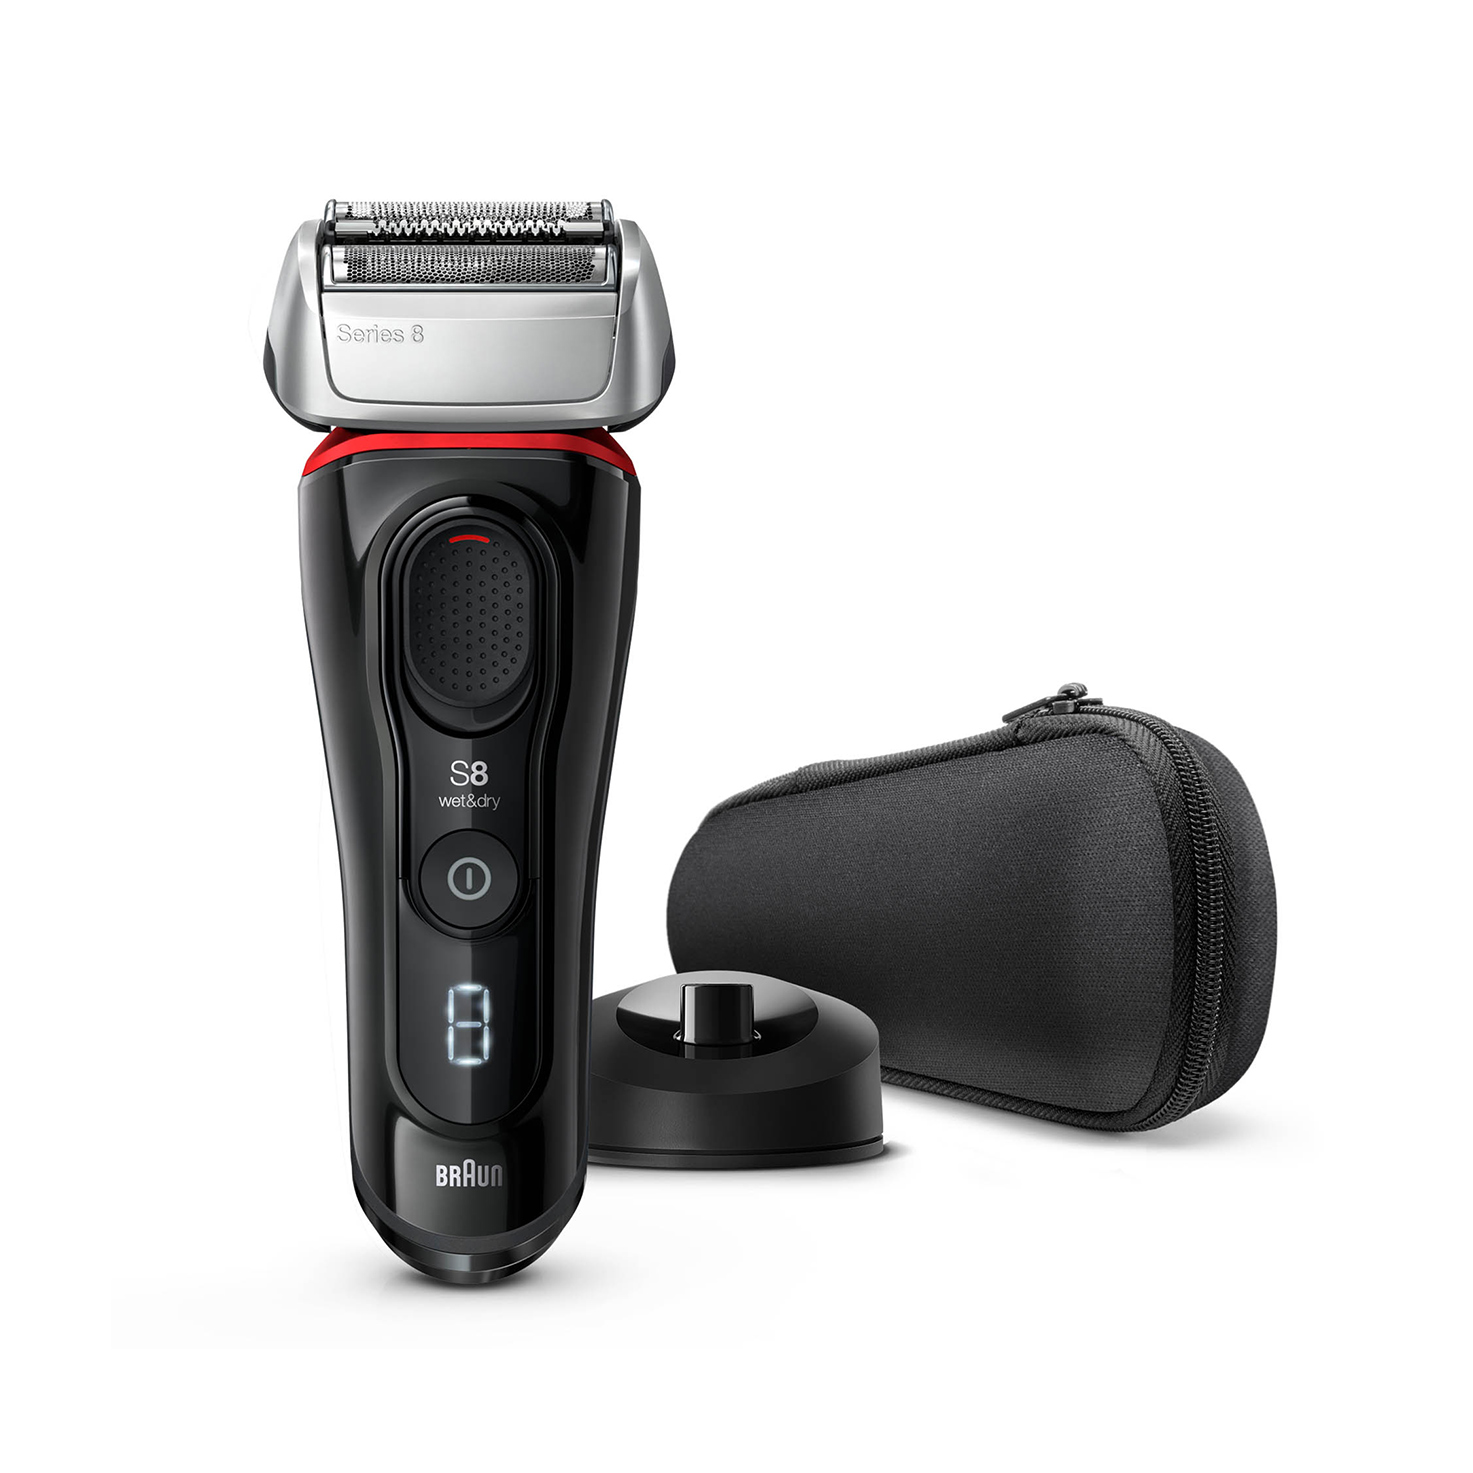 Series 8 8340s shaver